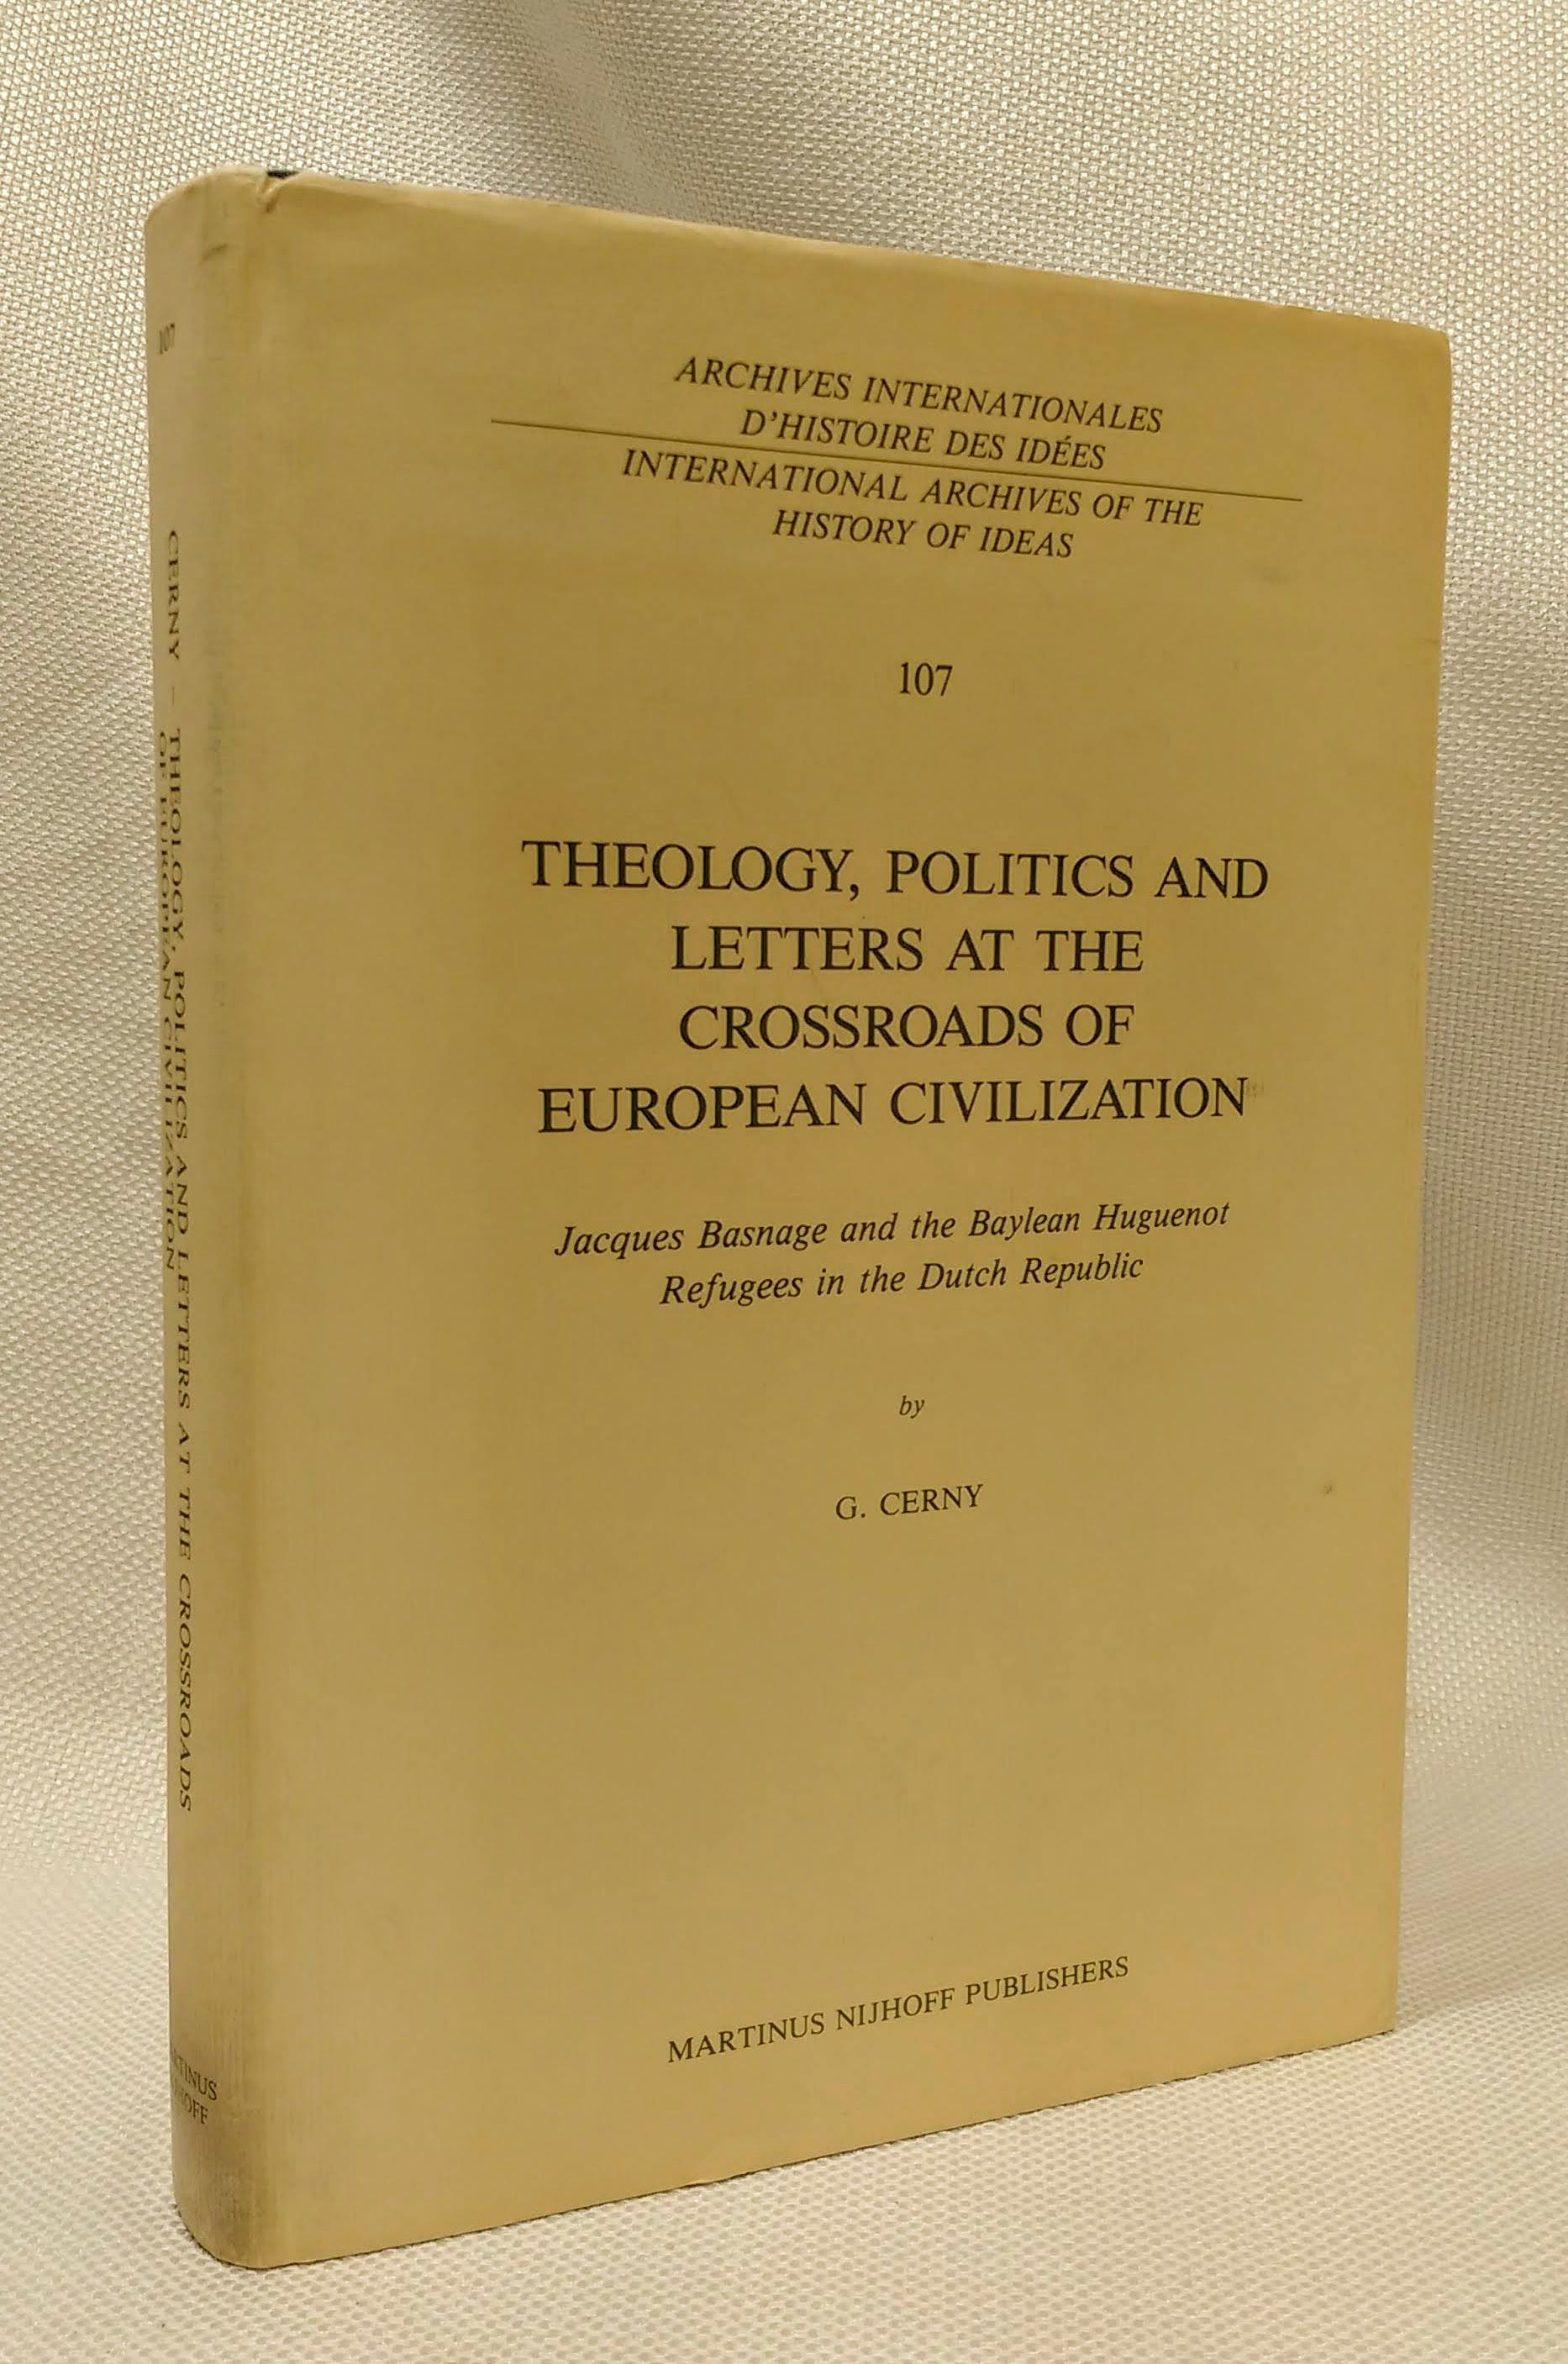 Theology, Politics and Letters at the Crossroads of European Civilization: Jacques Basnage and the Baylean Huguenot Refugees in the Dutch Republic (International Archives of the History of Ideas, 107), Gerald Cerny